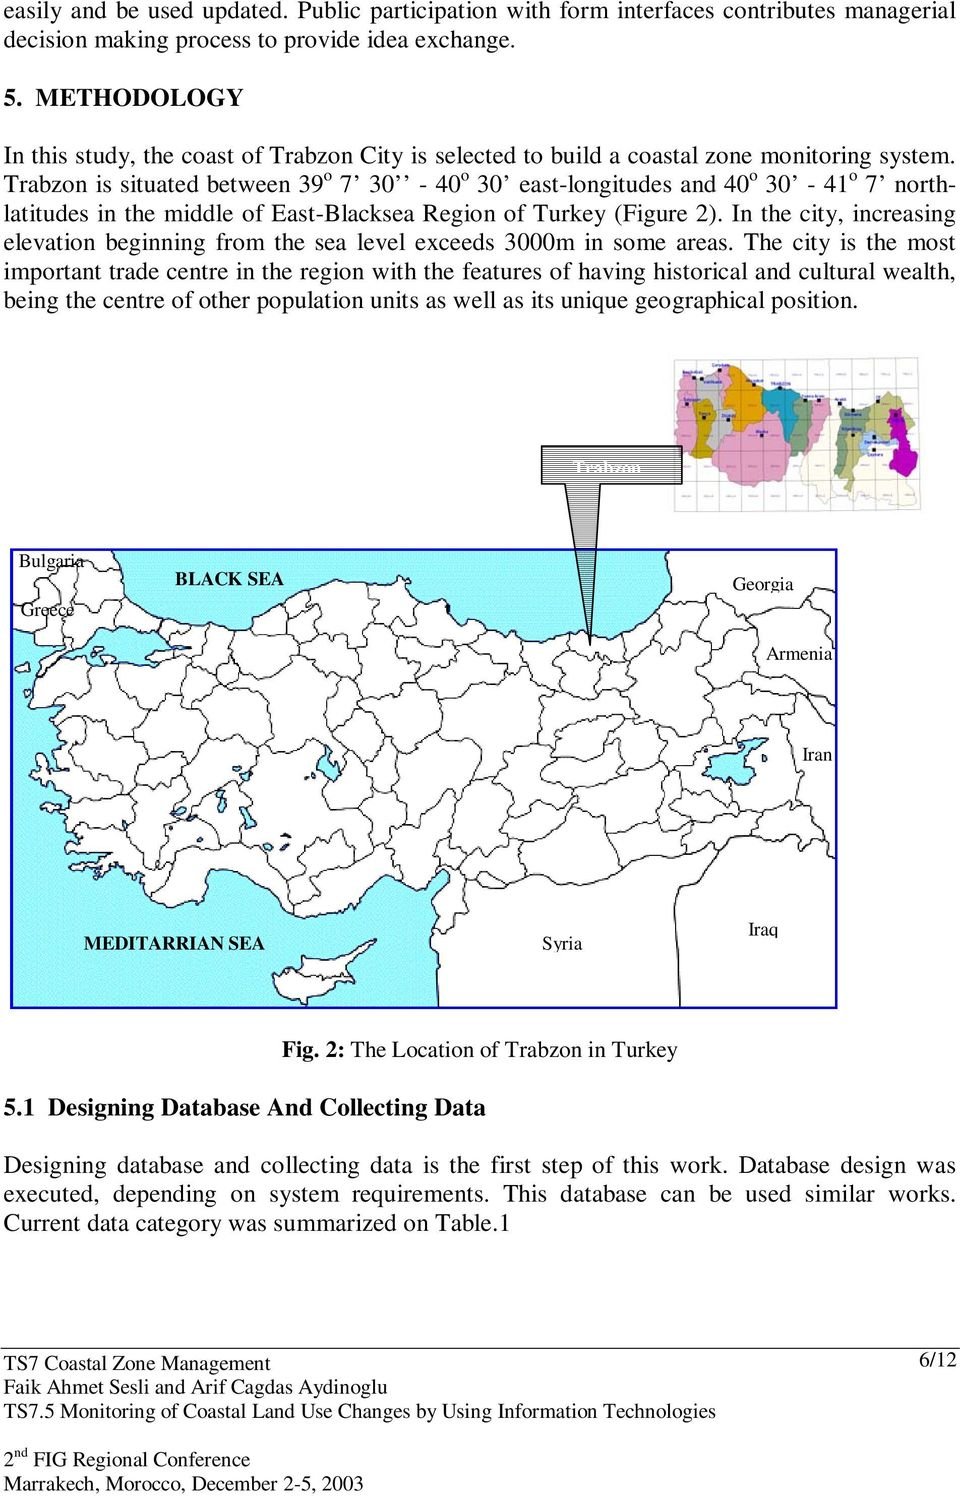 Trabzon is situated between 39 o 7 30-40 o 30 east-longitudes and 40 o 30-41 o 7 northlatitudes in the middle of East-Blacksea Region of Turkey (Figure 2).